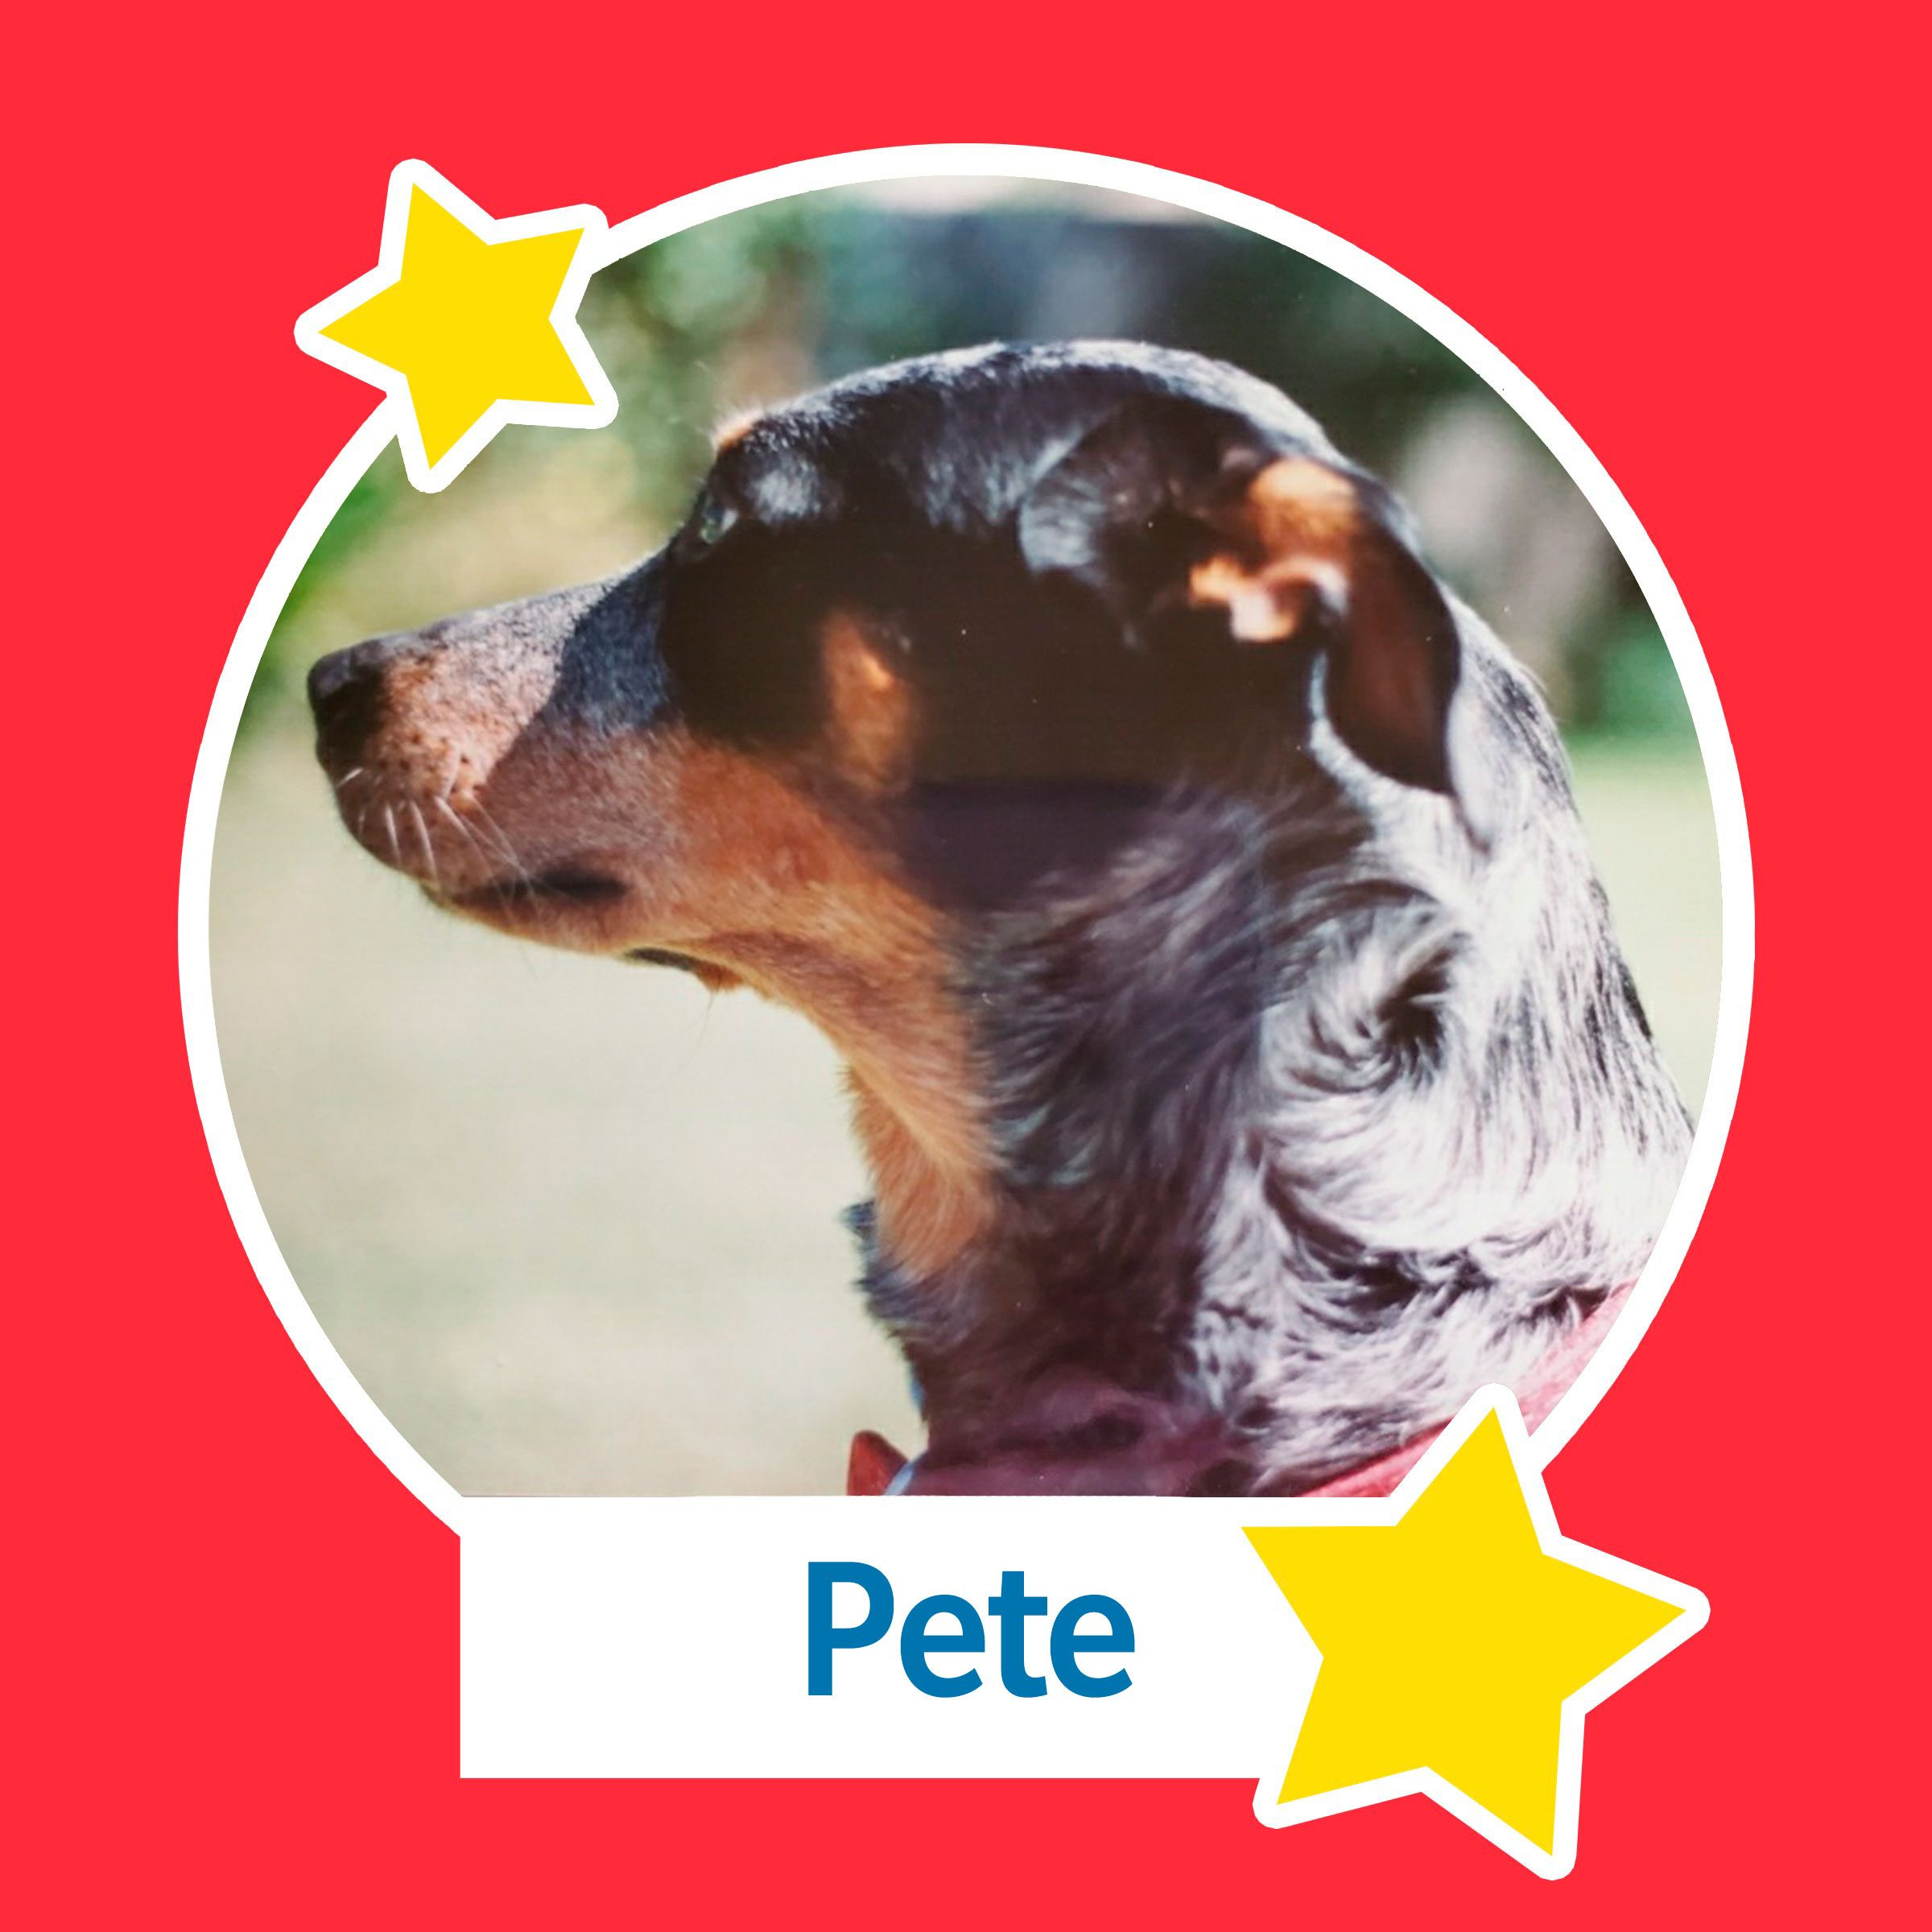 Pete the dog